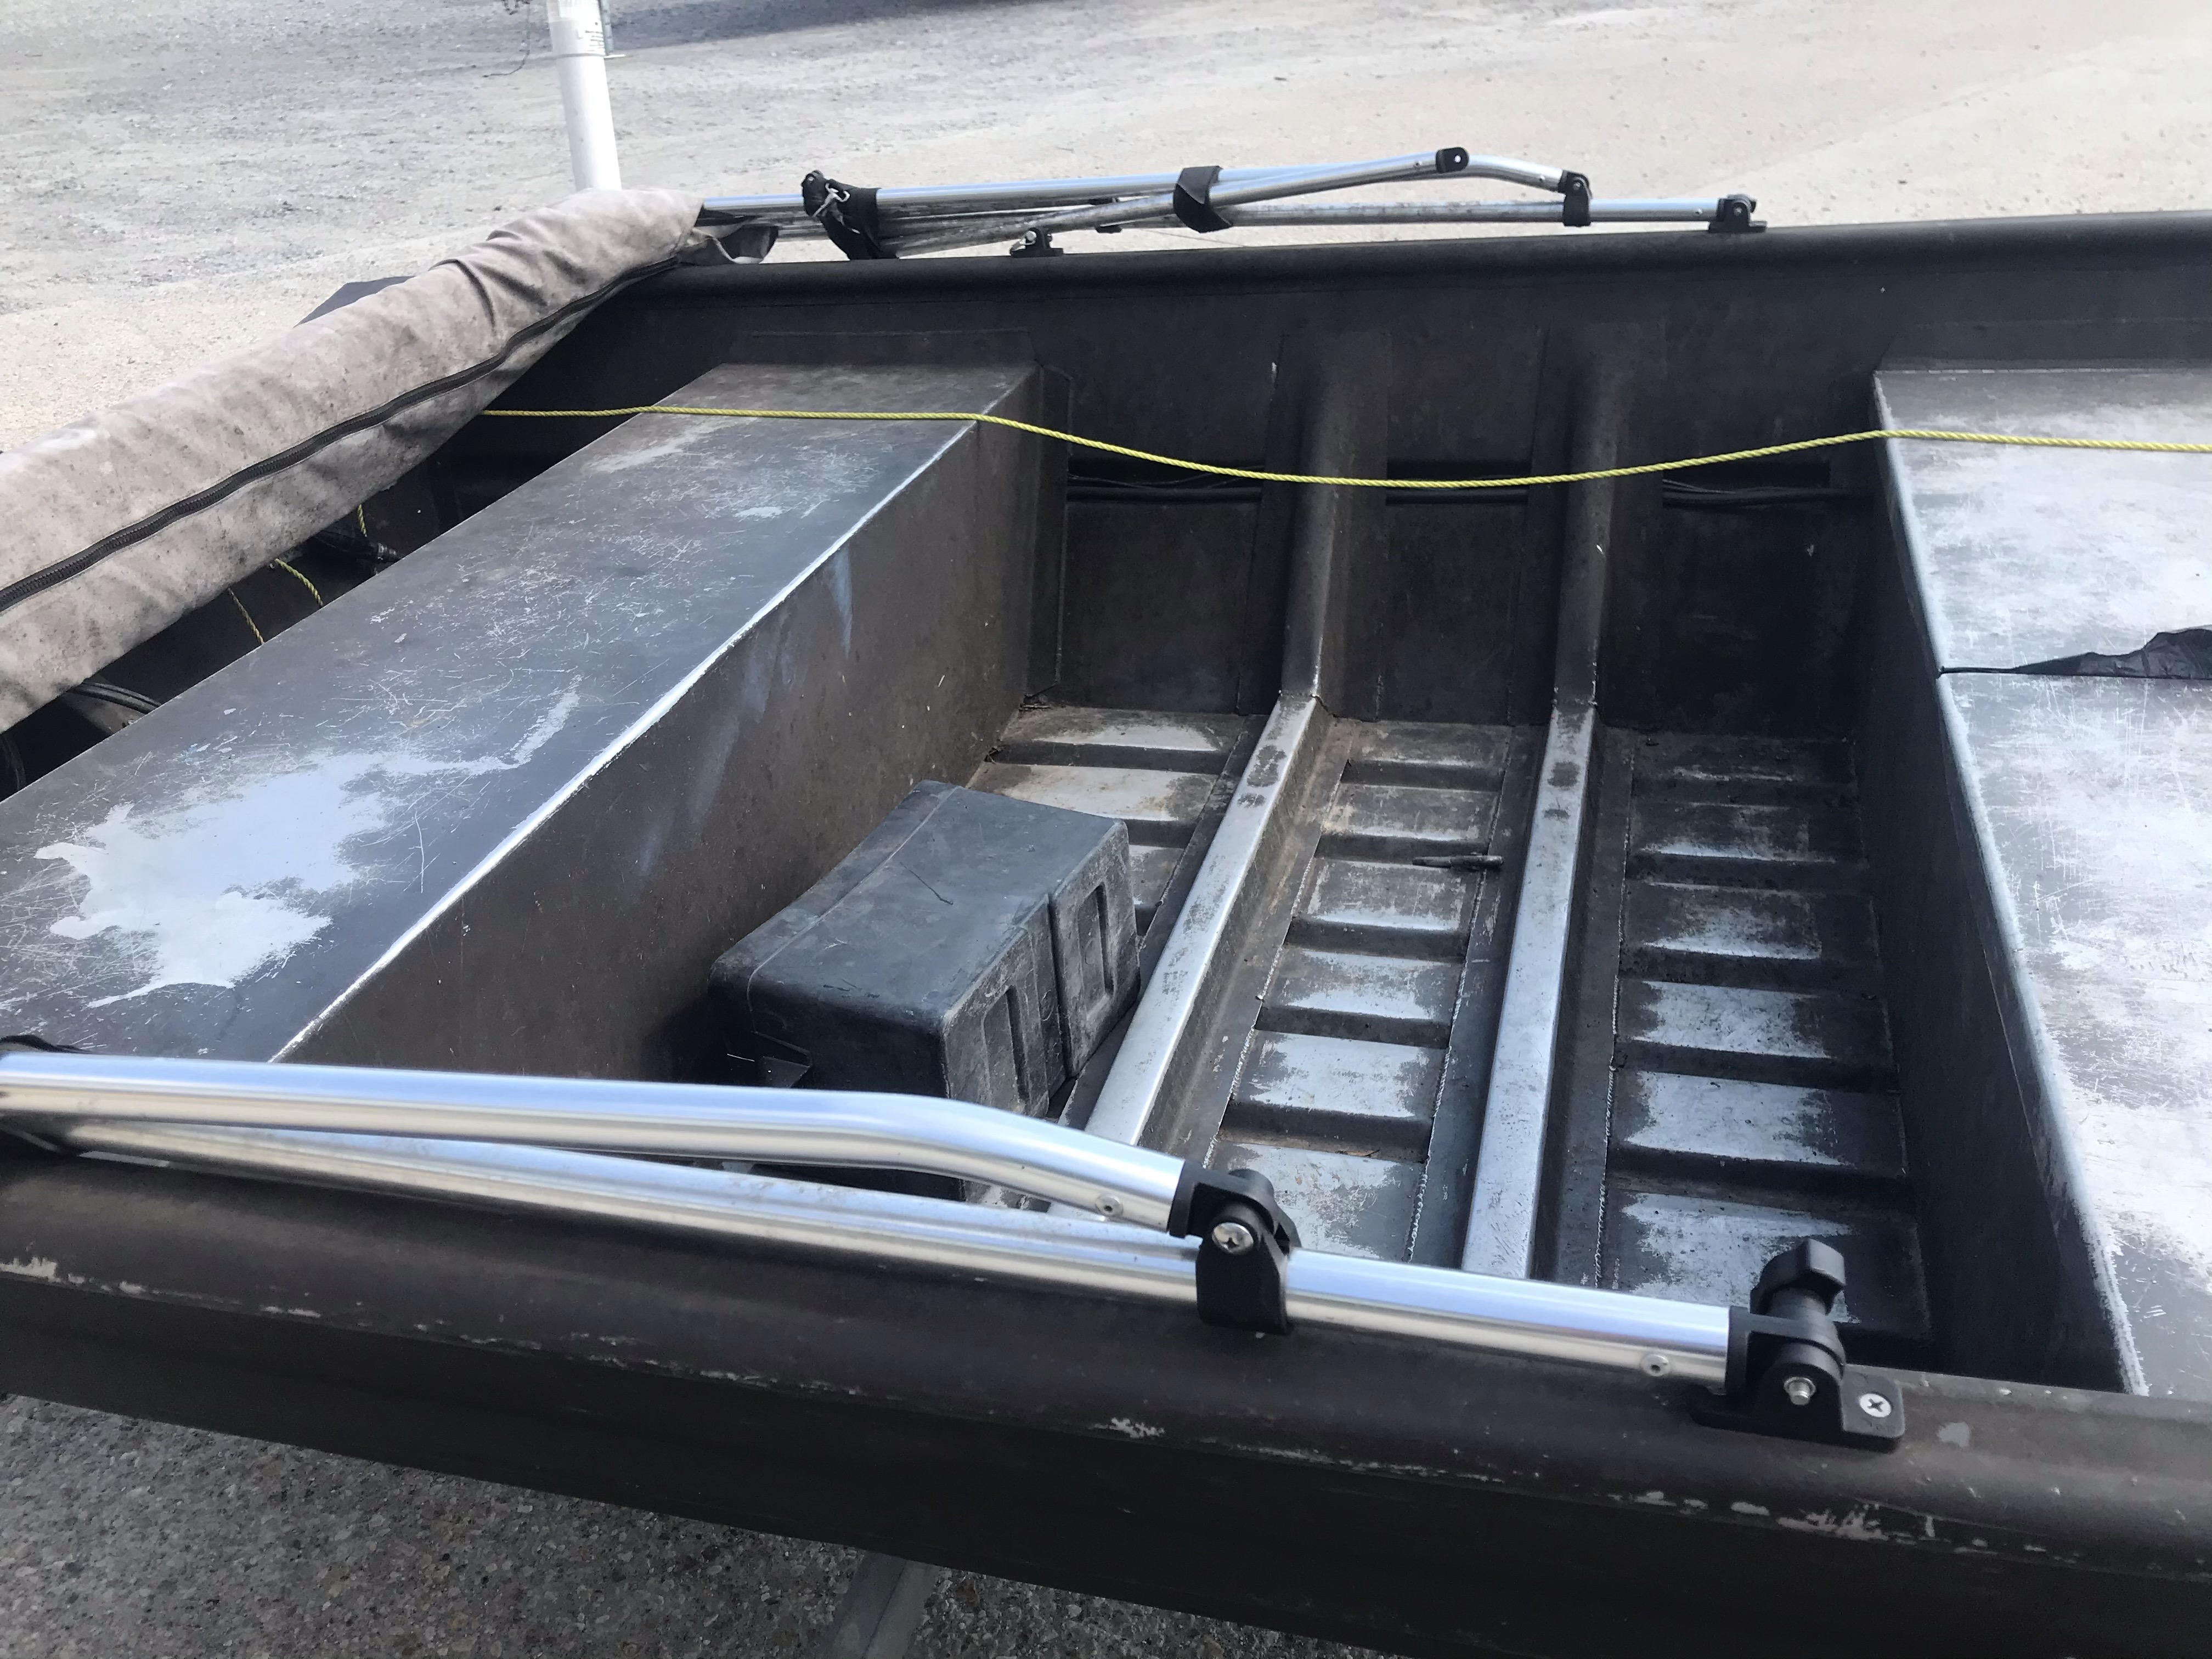 2001 Weld-Craft boat for sale, model of the boat is 14ft & Image # 6 of 7